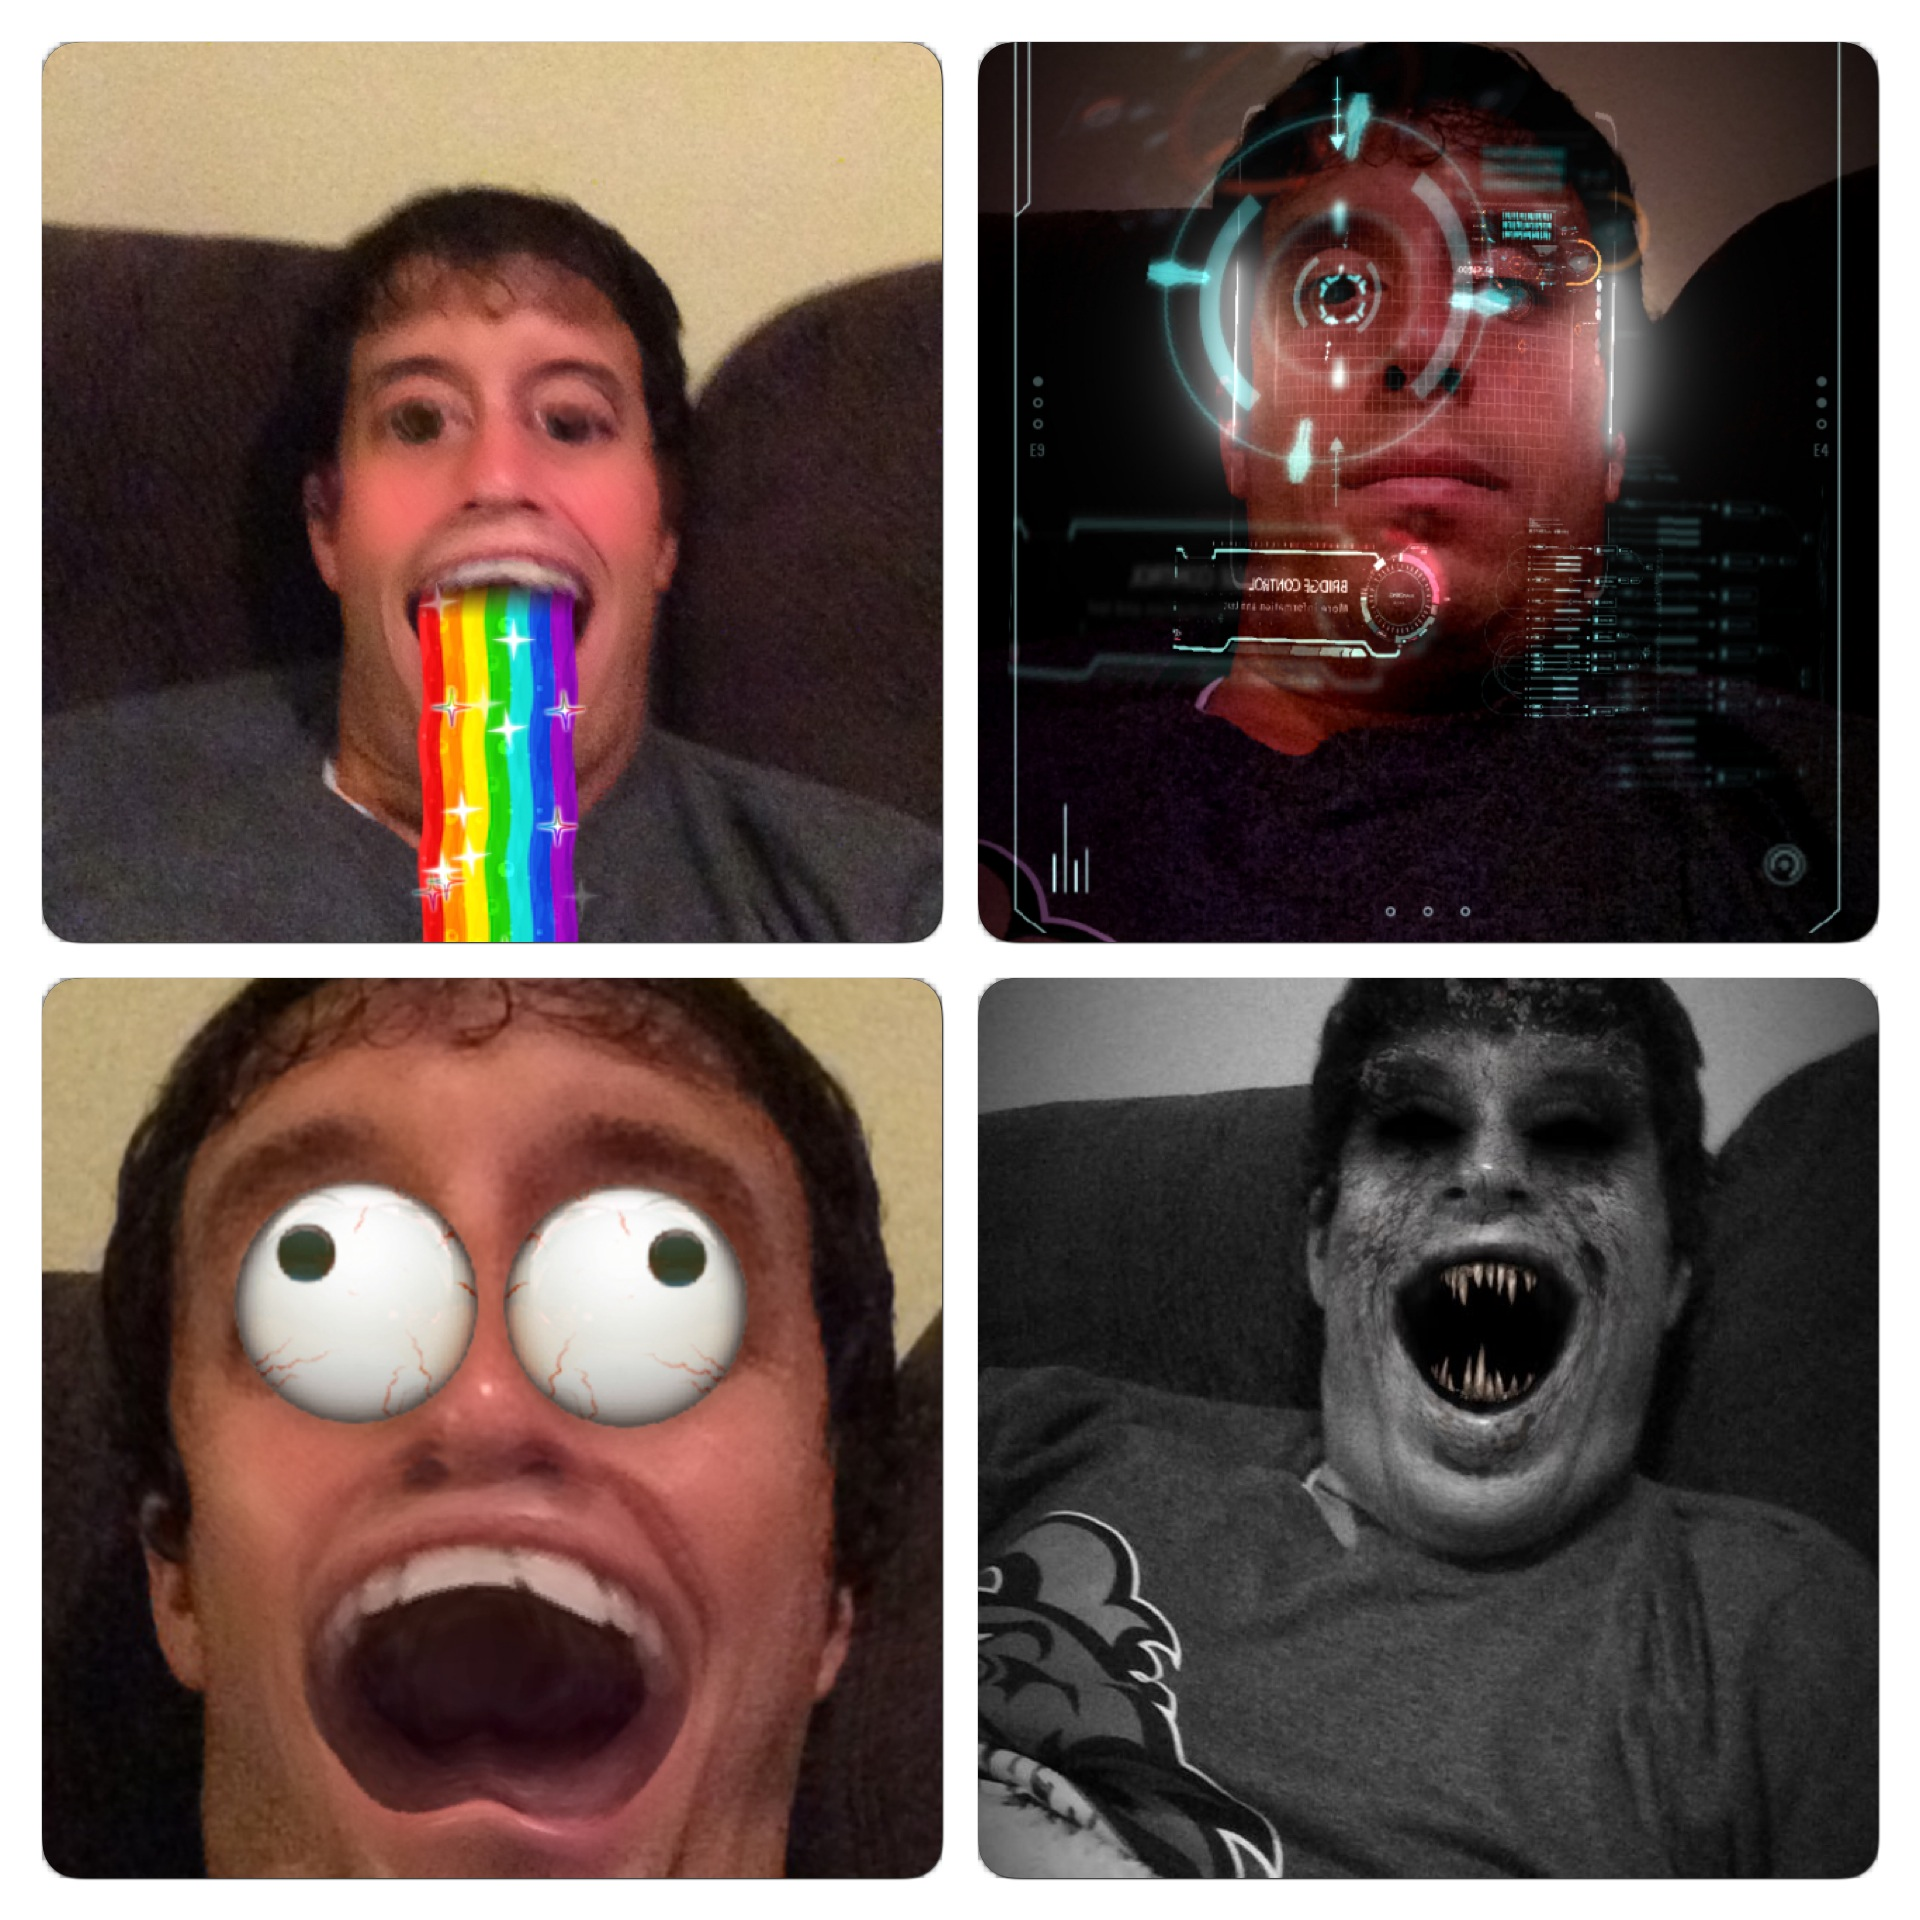 These are some of the new Snapchat filters.